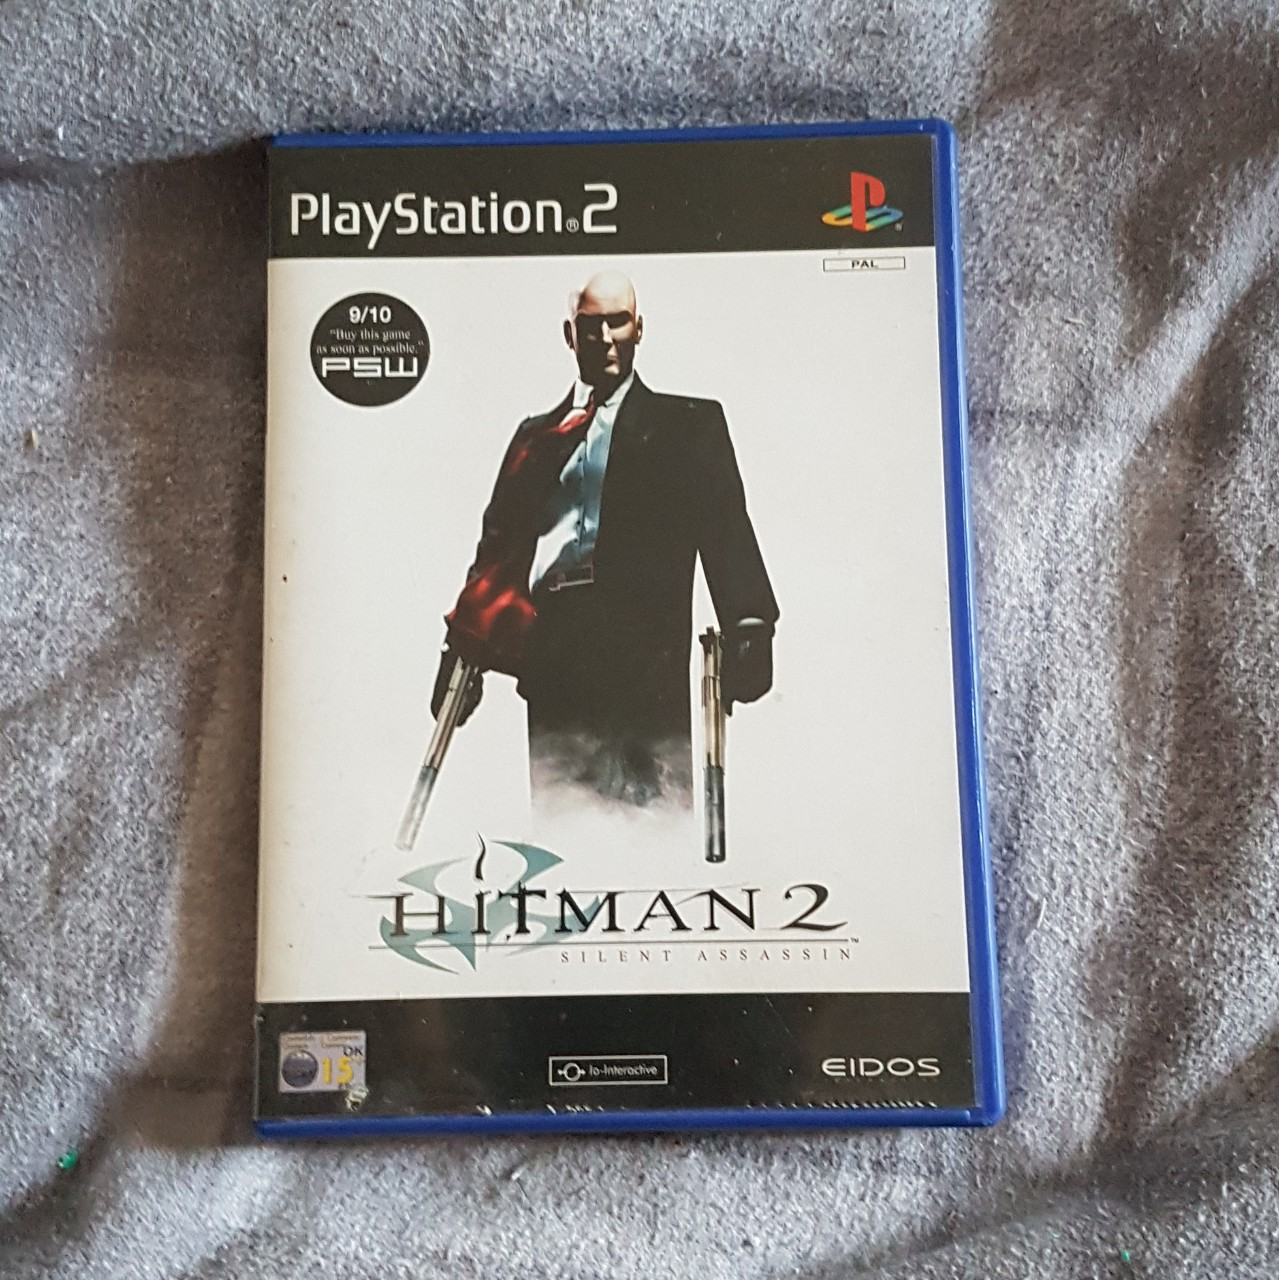 Ps2 Hitman 2 Silent Assassin Missing Instruction Depop